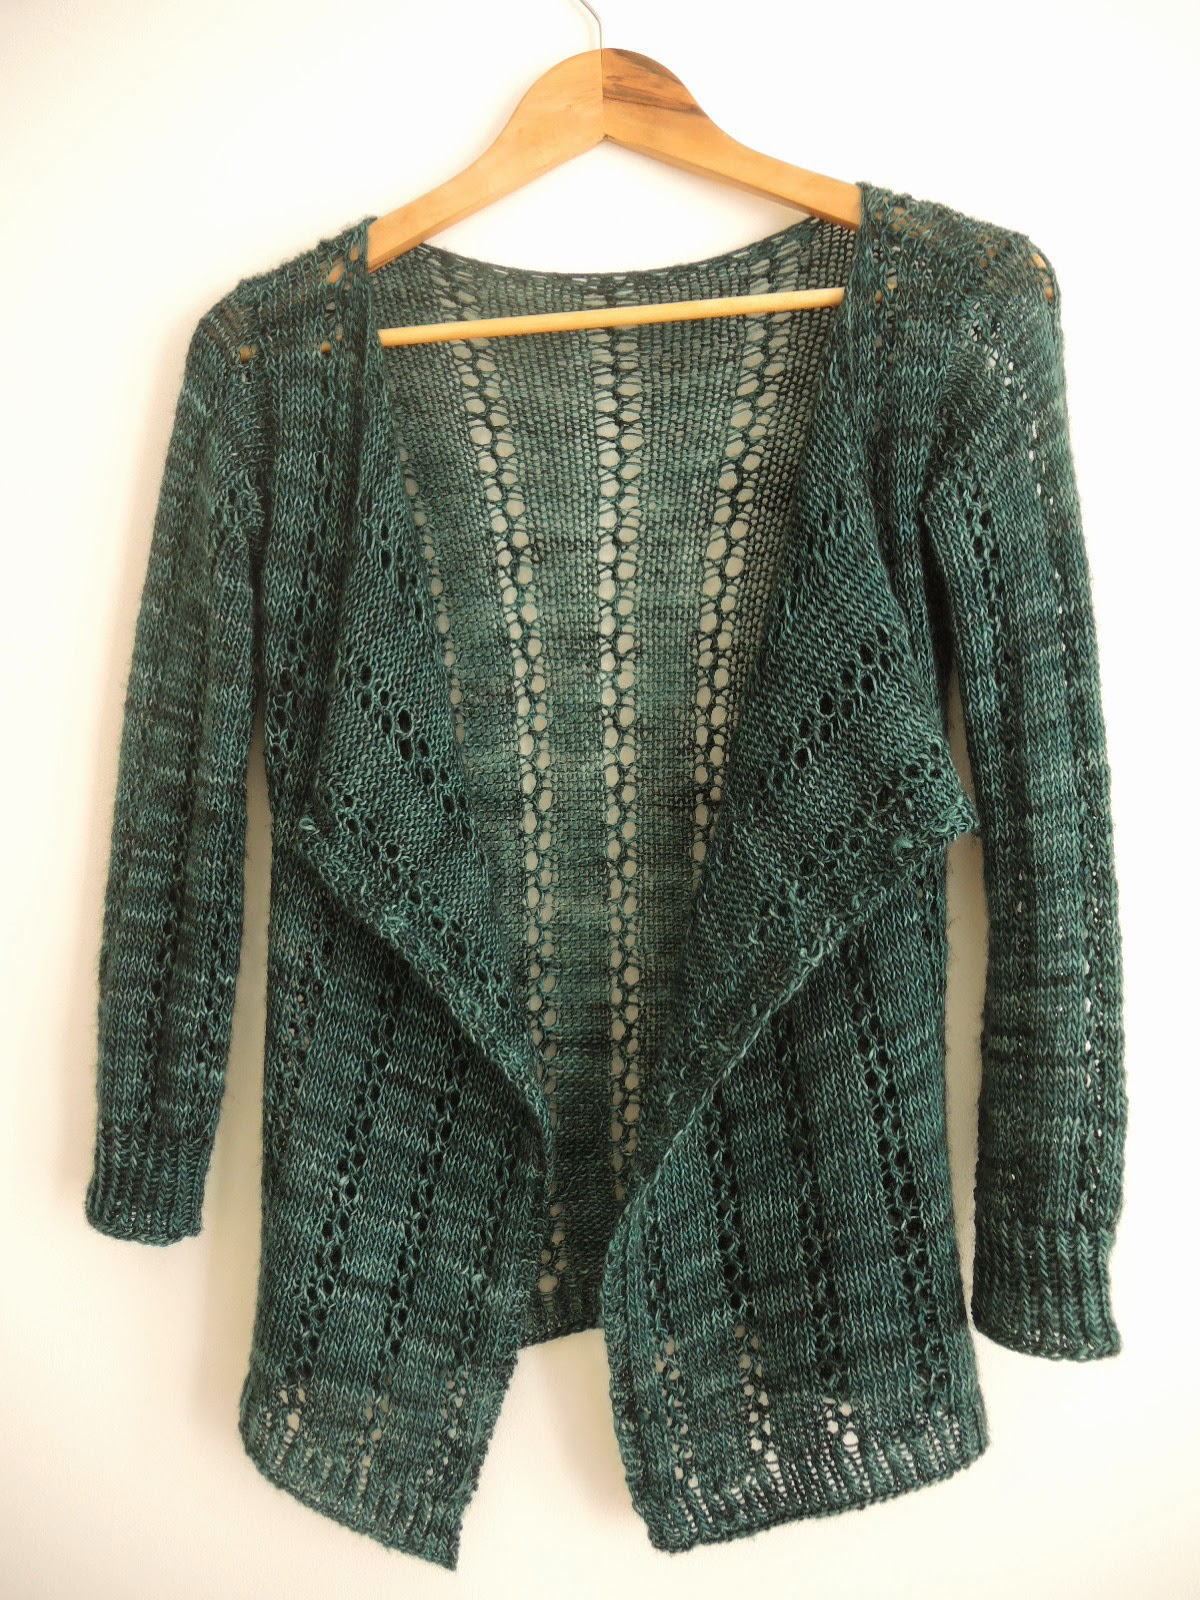 lace cardigan knitting pattern simple basic blanket front